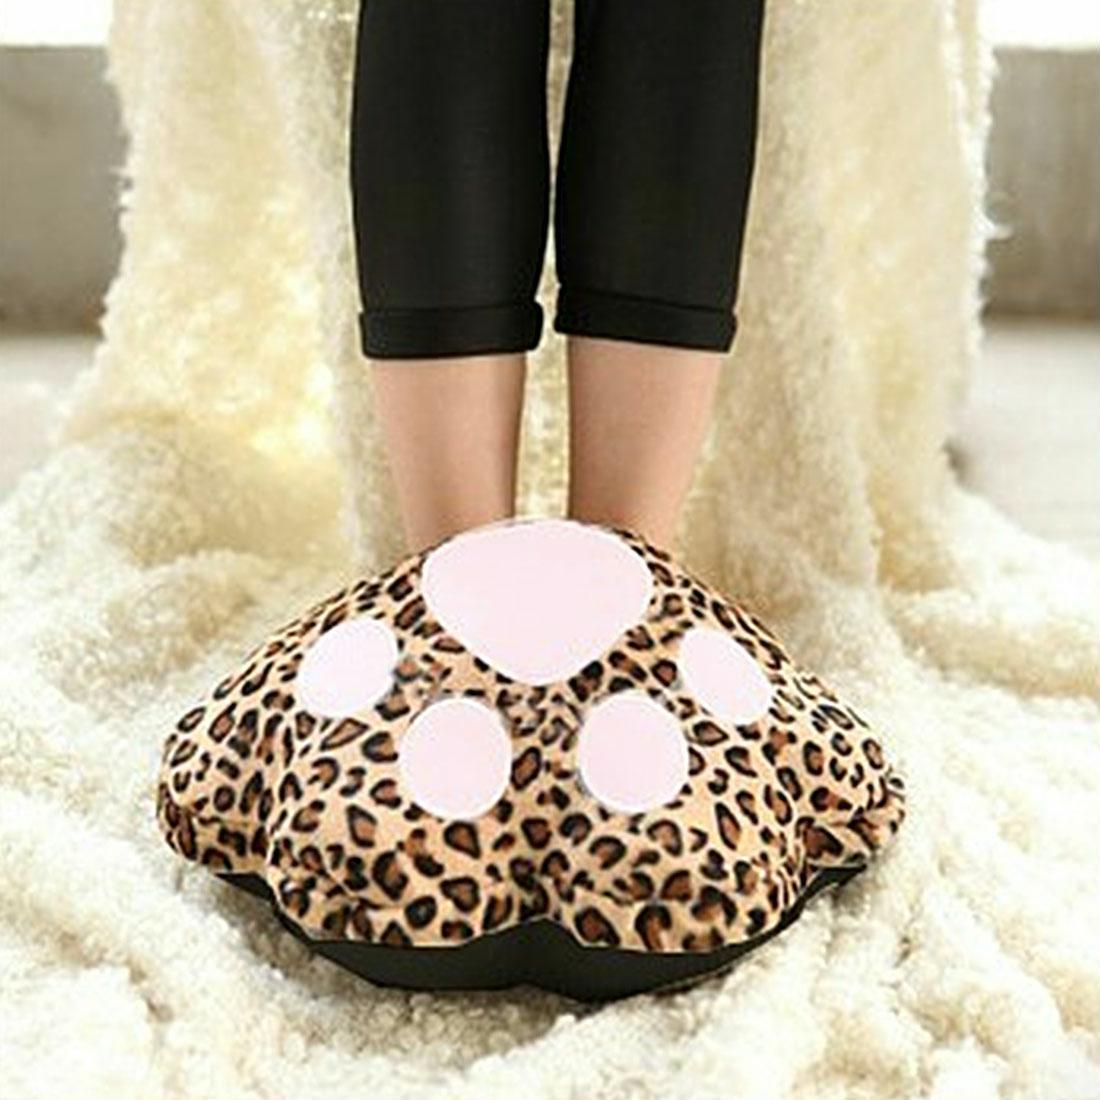 Bedroom Slipper Electric Usb Foot Warmer Pad Computer Footwear Heater Shoes Home